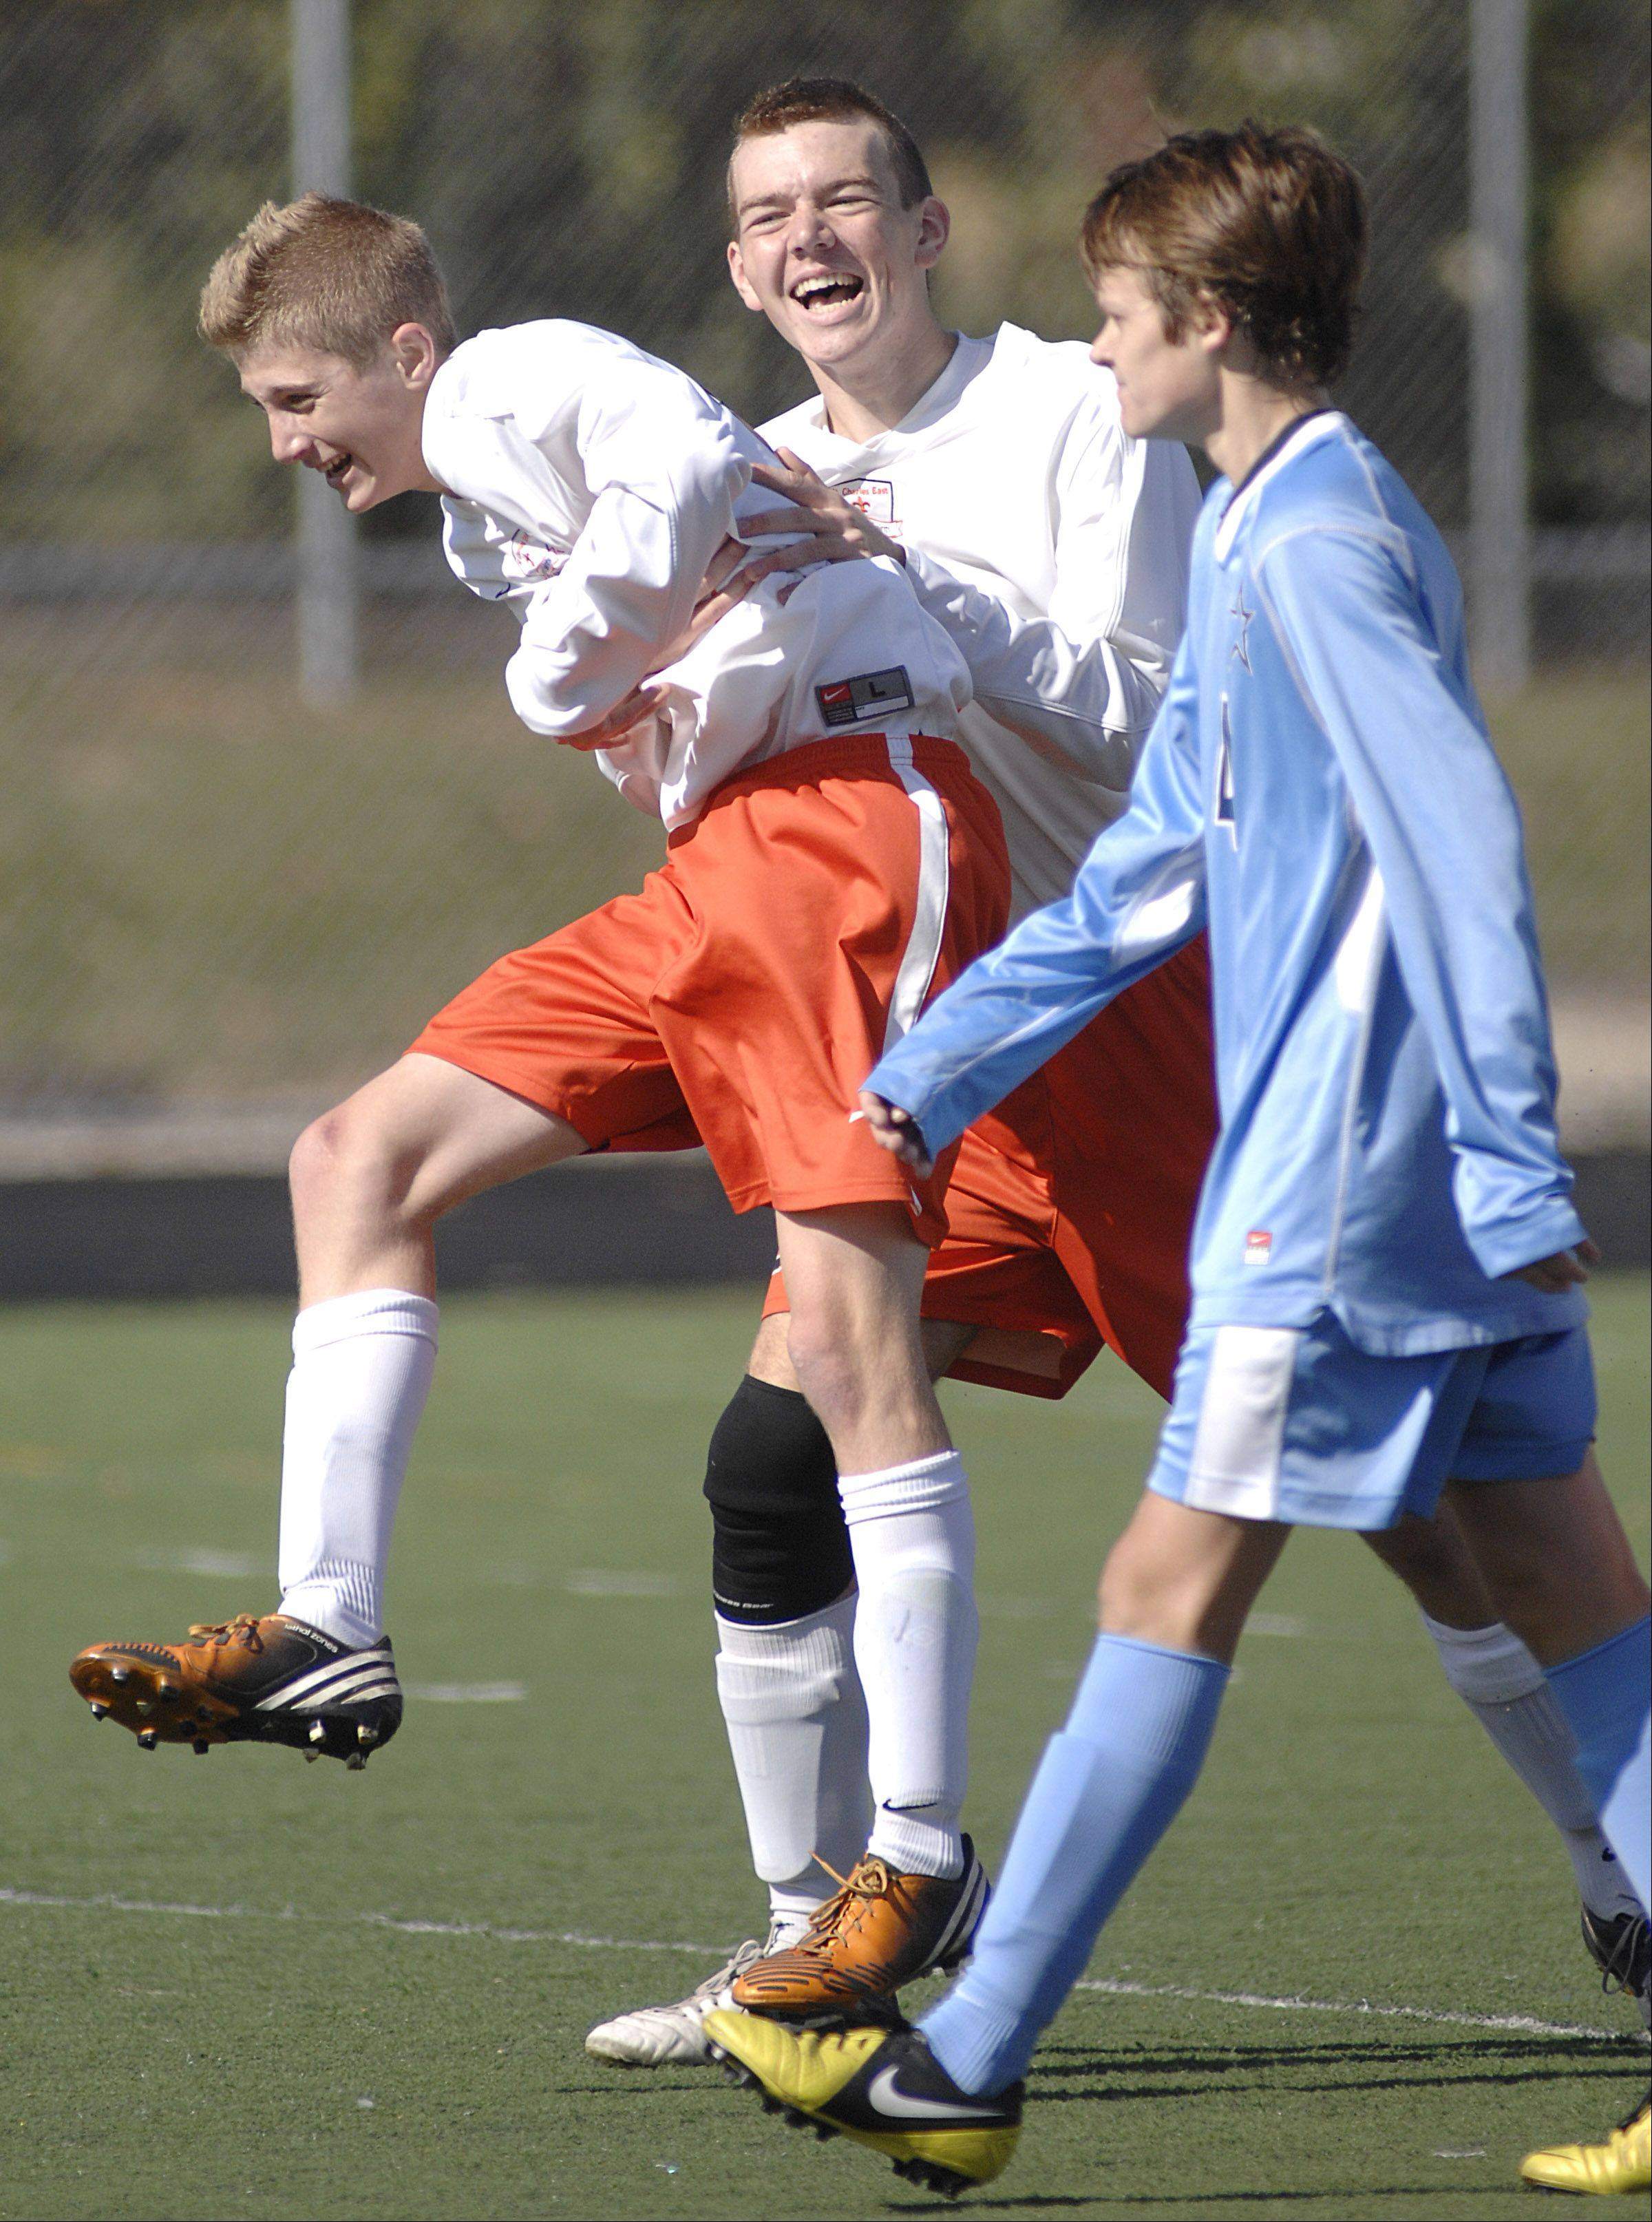 St. Charles East's Andrew Shone, left, gets lifted in a hug from teammate Brandon Villanueva after scoring a goal in the final seconds of the first half of the regional championship on Saturday, October 20.